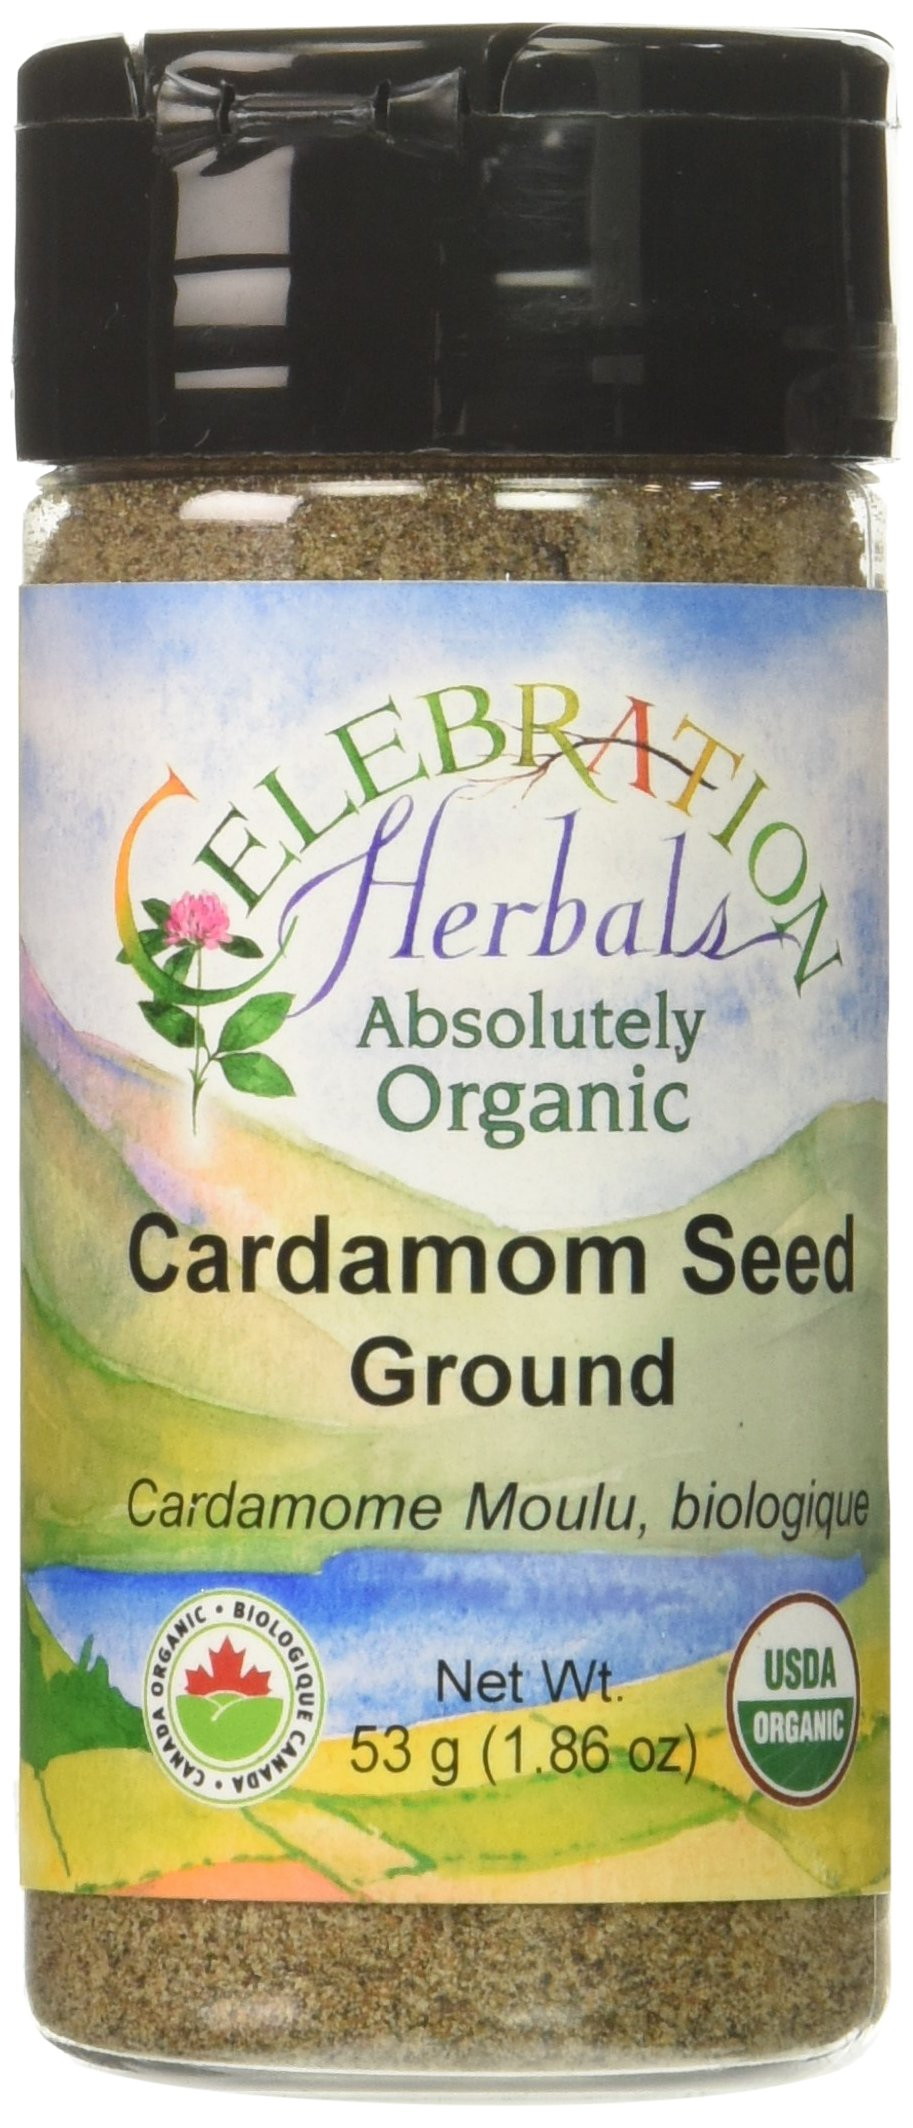 CELEBRATION HERBALS Cardamon Seed Ground Organic 50 g, 0.02 Pound by Celebration Herbals (Image #1)